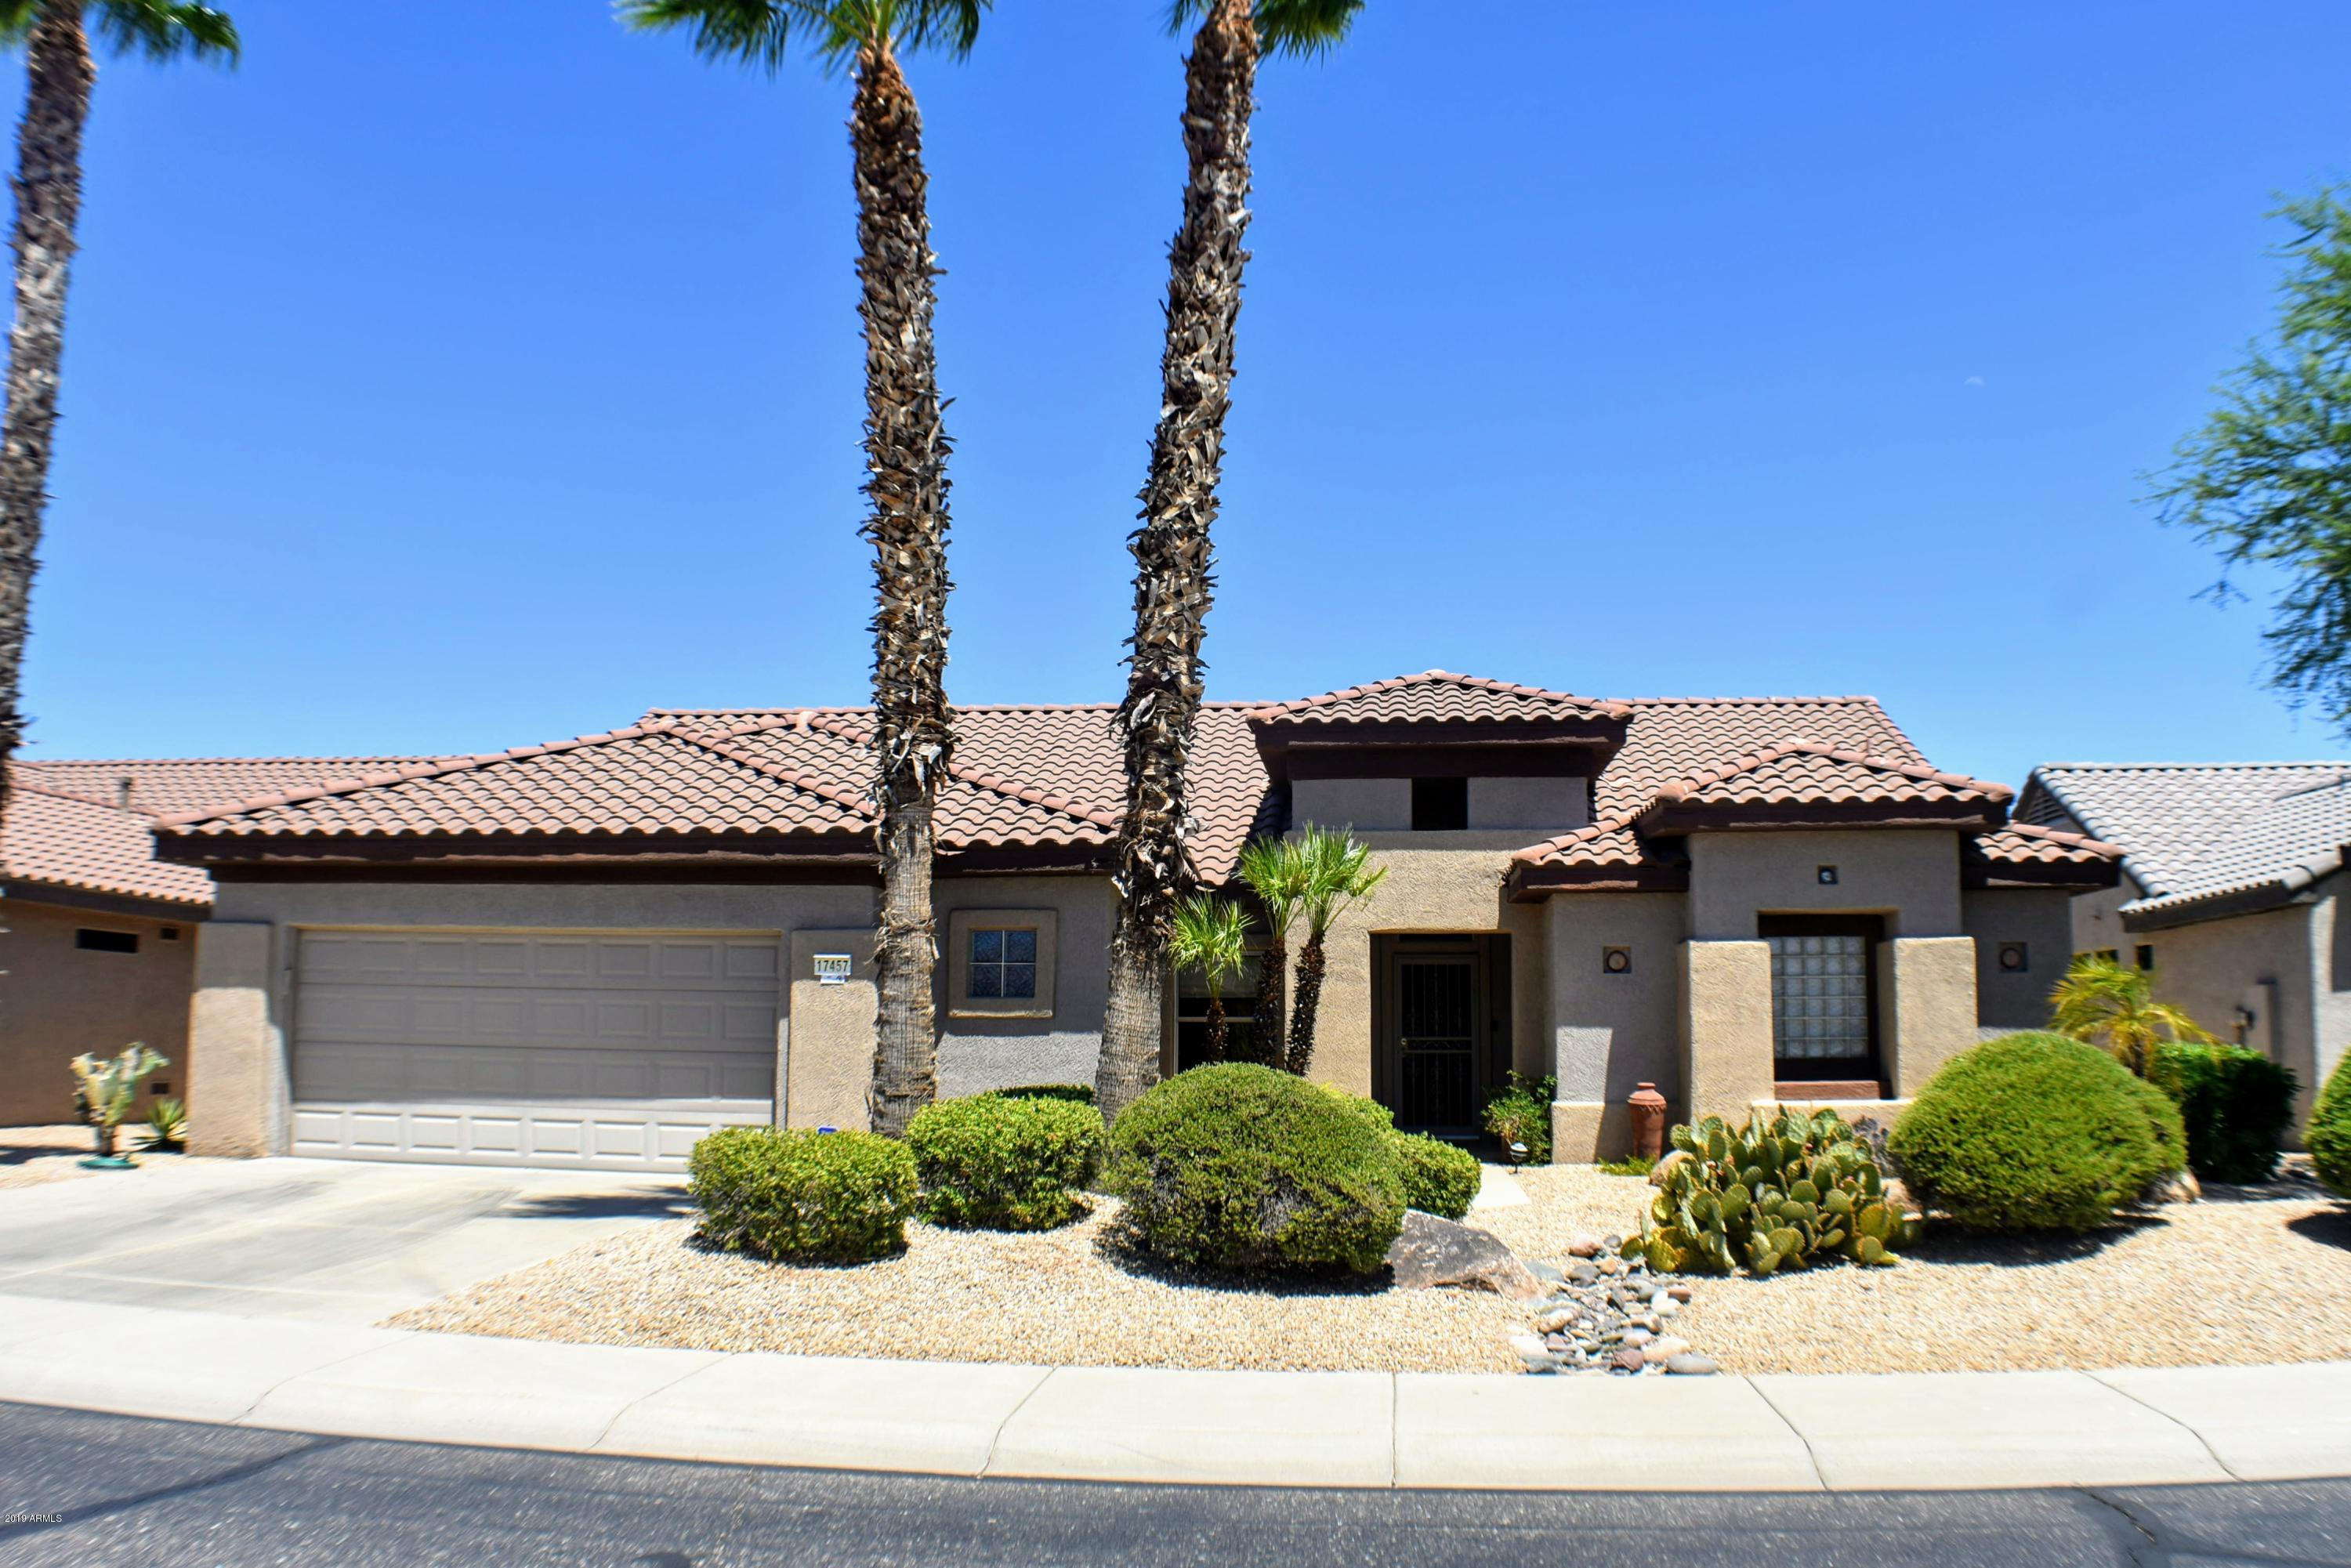 Photo of 17457 N ESTRELLA VISTA Drive, Surprise, AZ 85374